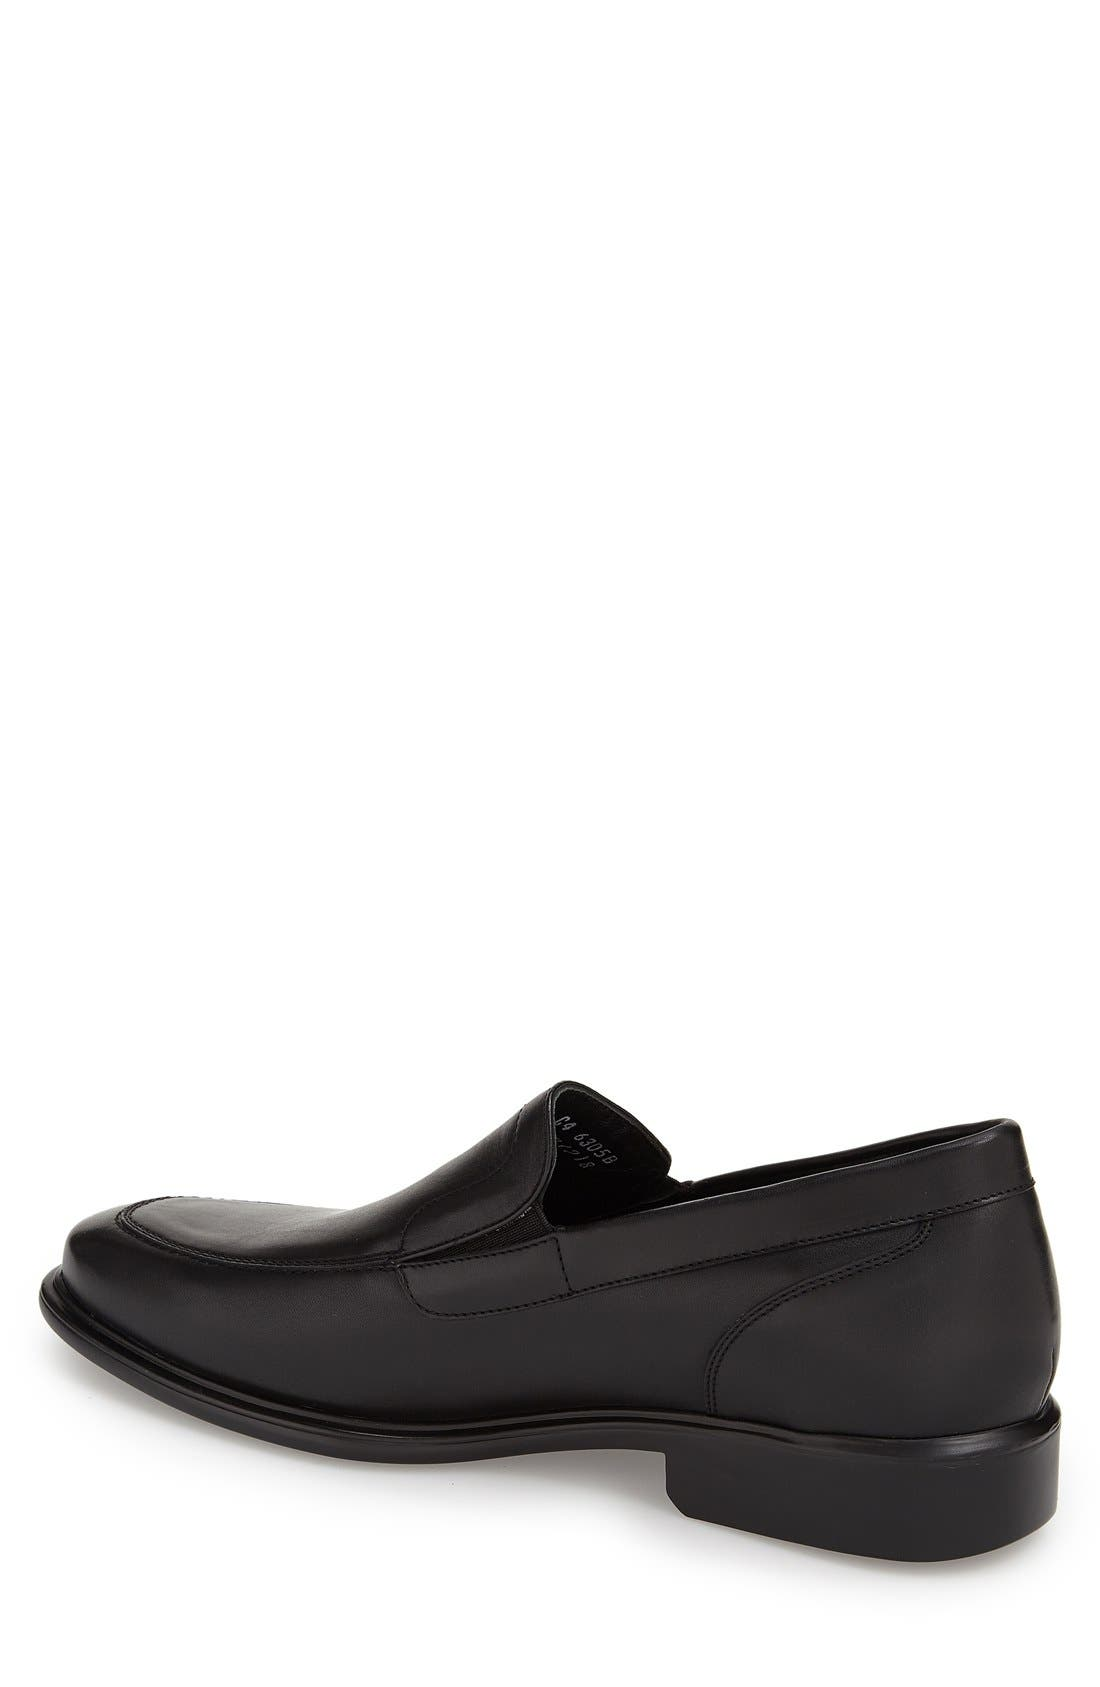 'Chancellor' Venetian Loafer,                             Alternate thumbnail 2, color,                             BLACK